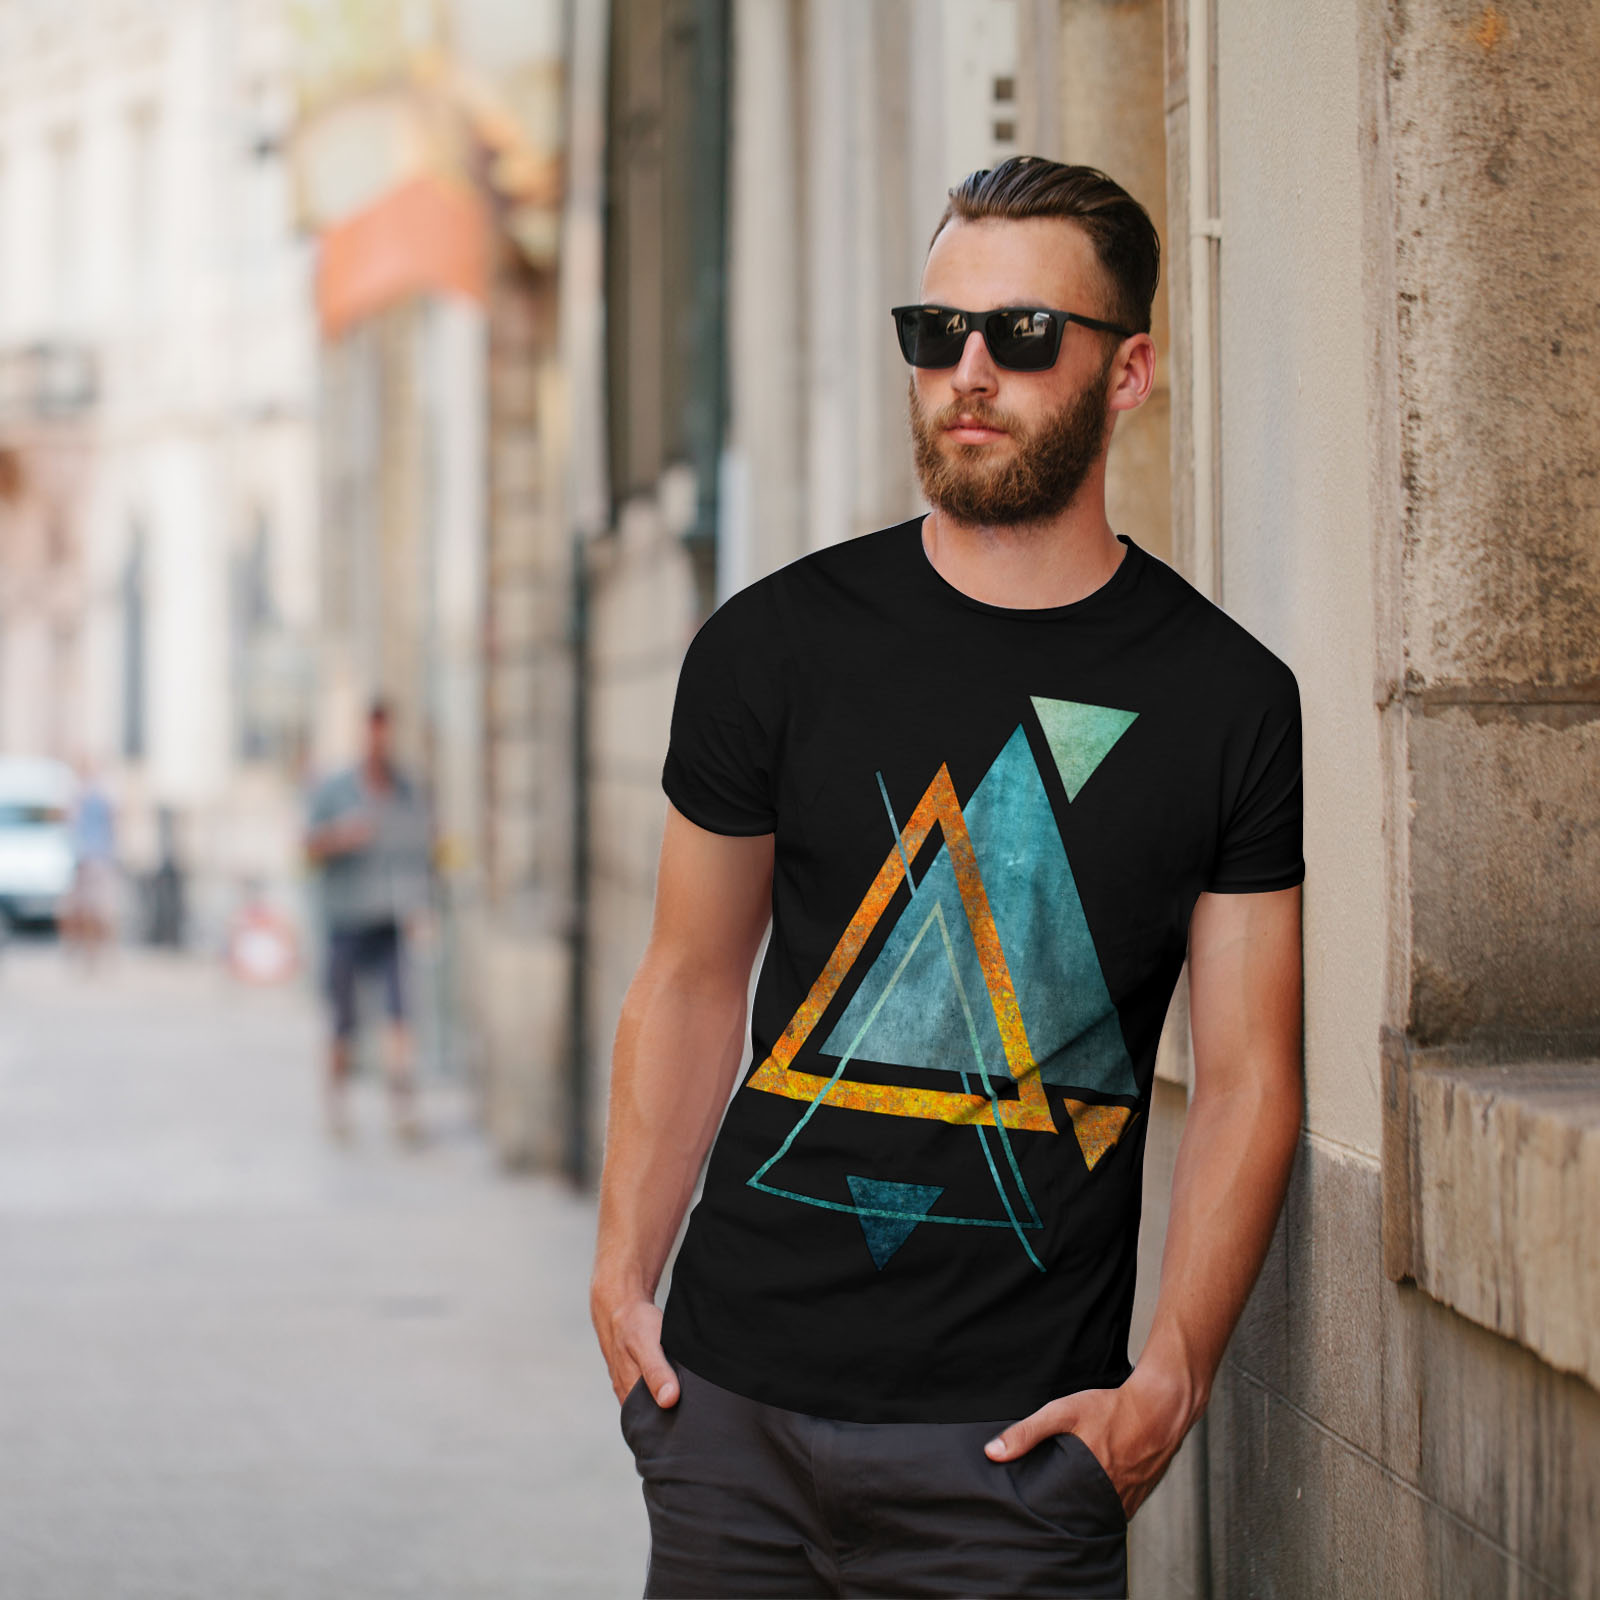 Wellcoda-Abstract-Triangle-T-shirt-homme-forme-design-graphique-imprime-Tee miniature 5